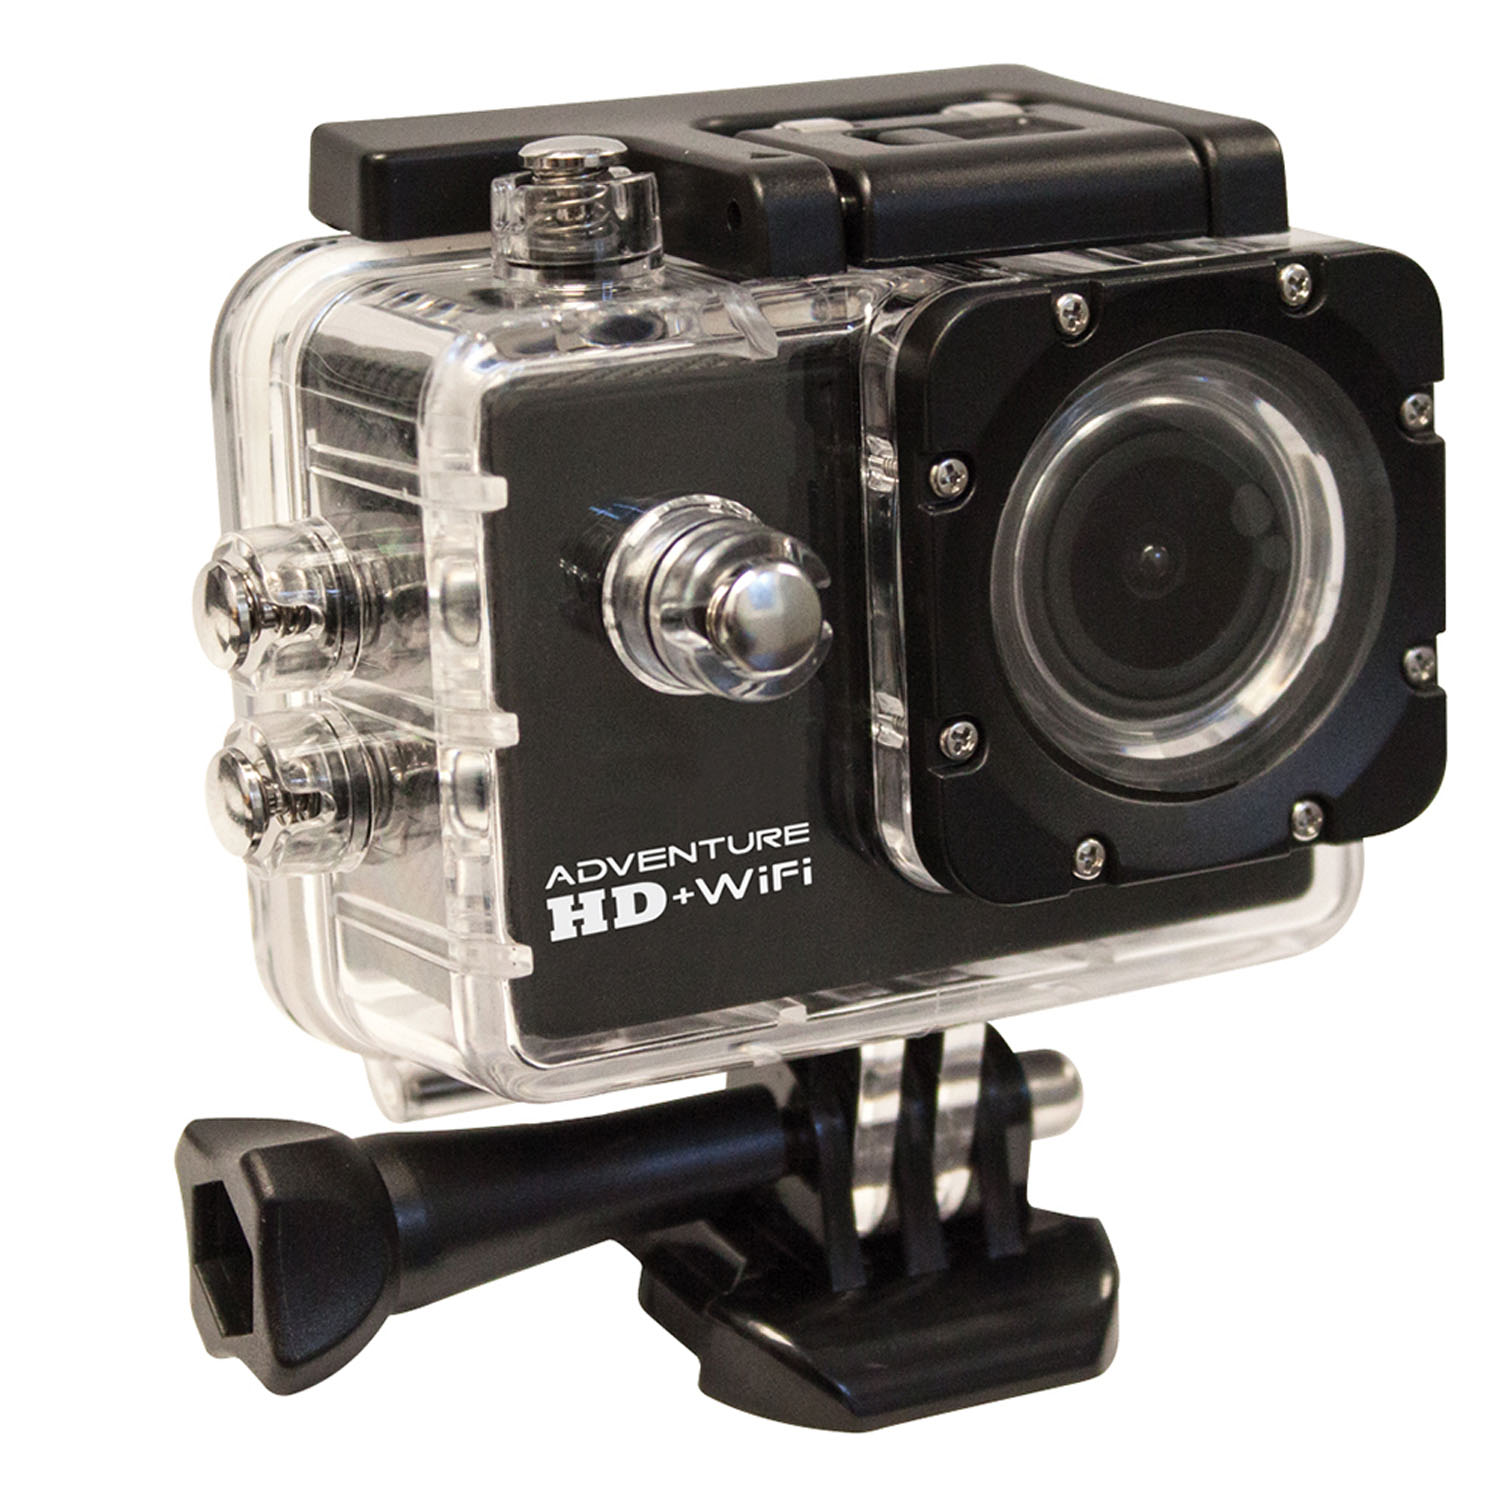 "W5210 WASP 12 MEGA PIXEL WATERPROOF (98 FEET) SPORTS ACTION CAMERA WITH 150 DEGREE WIDE ANGLE LENS, 1.5"" LCD DISPLAY & WI-FI"